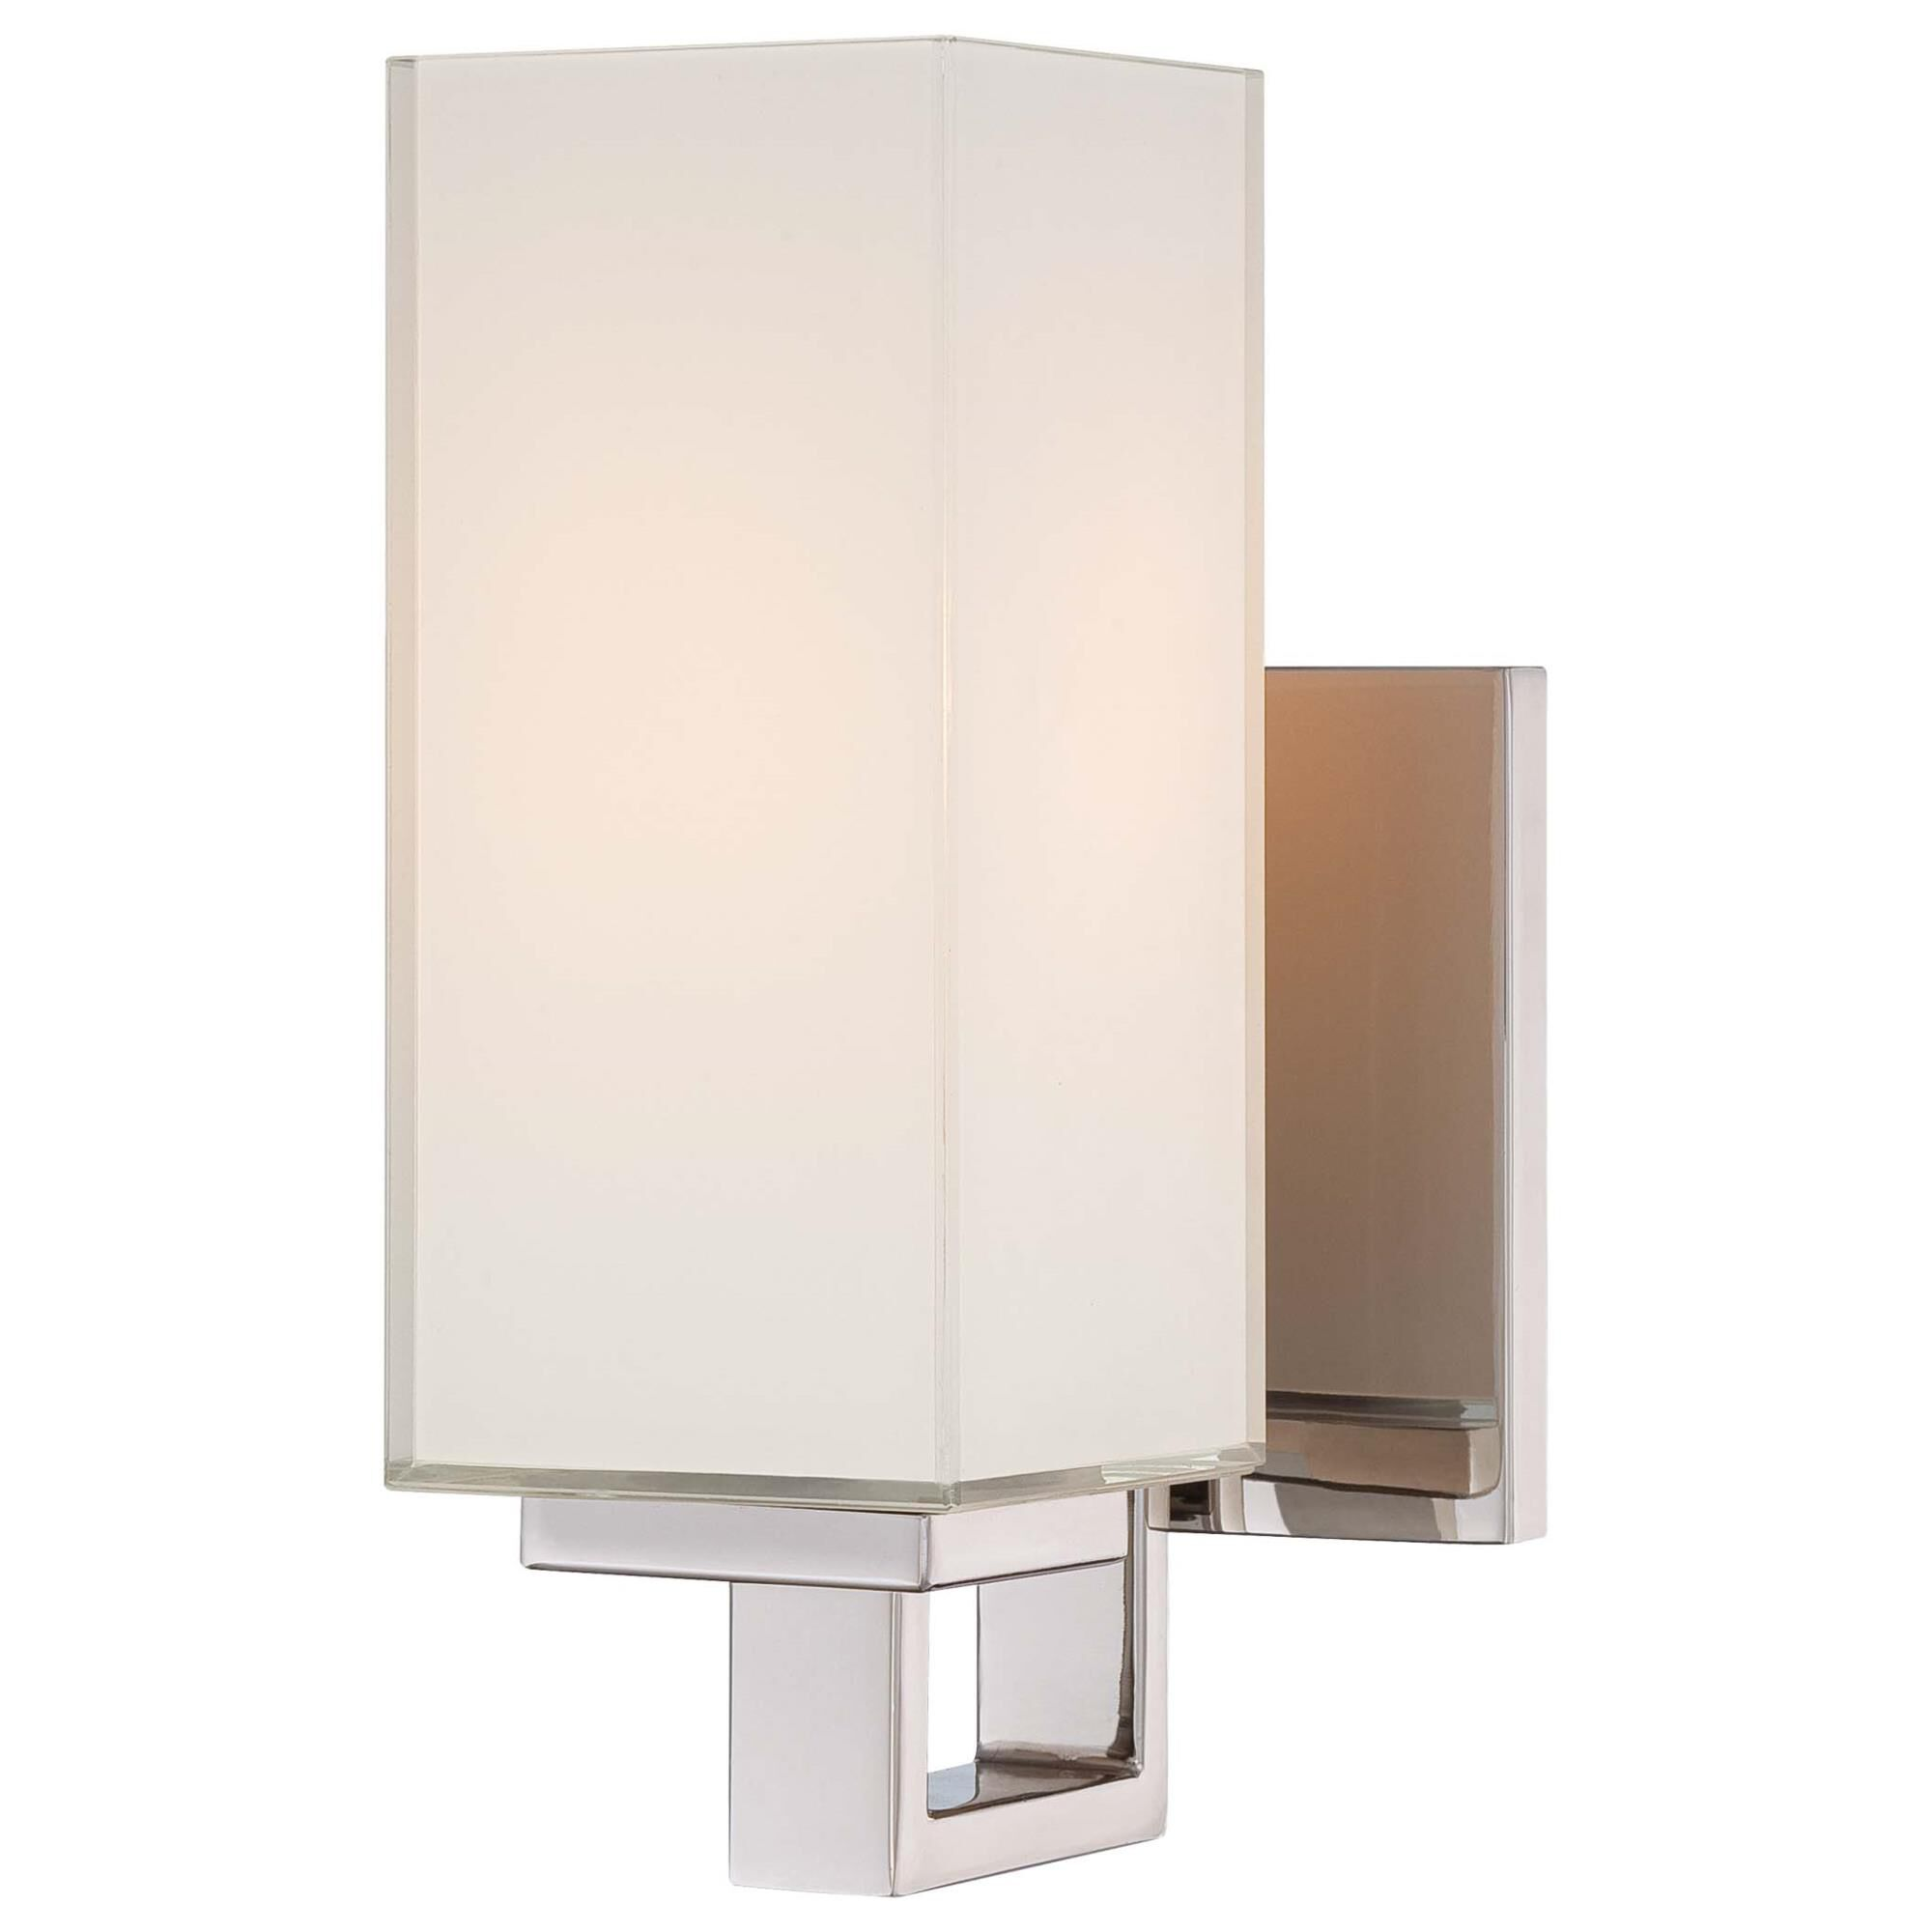 Kovacs 9 Inch Wall Sconce - P1702-613 - Modern Contemporary